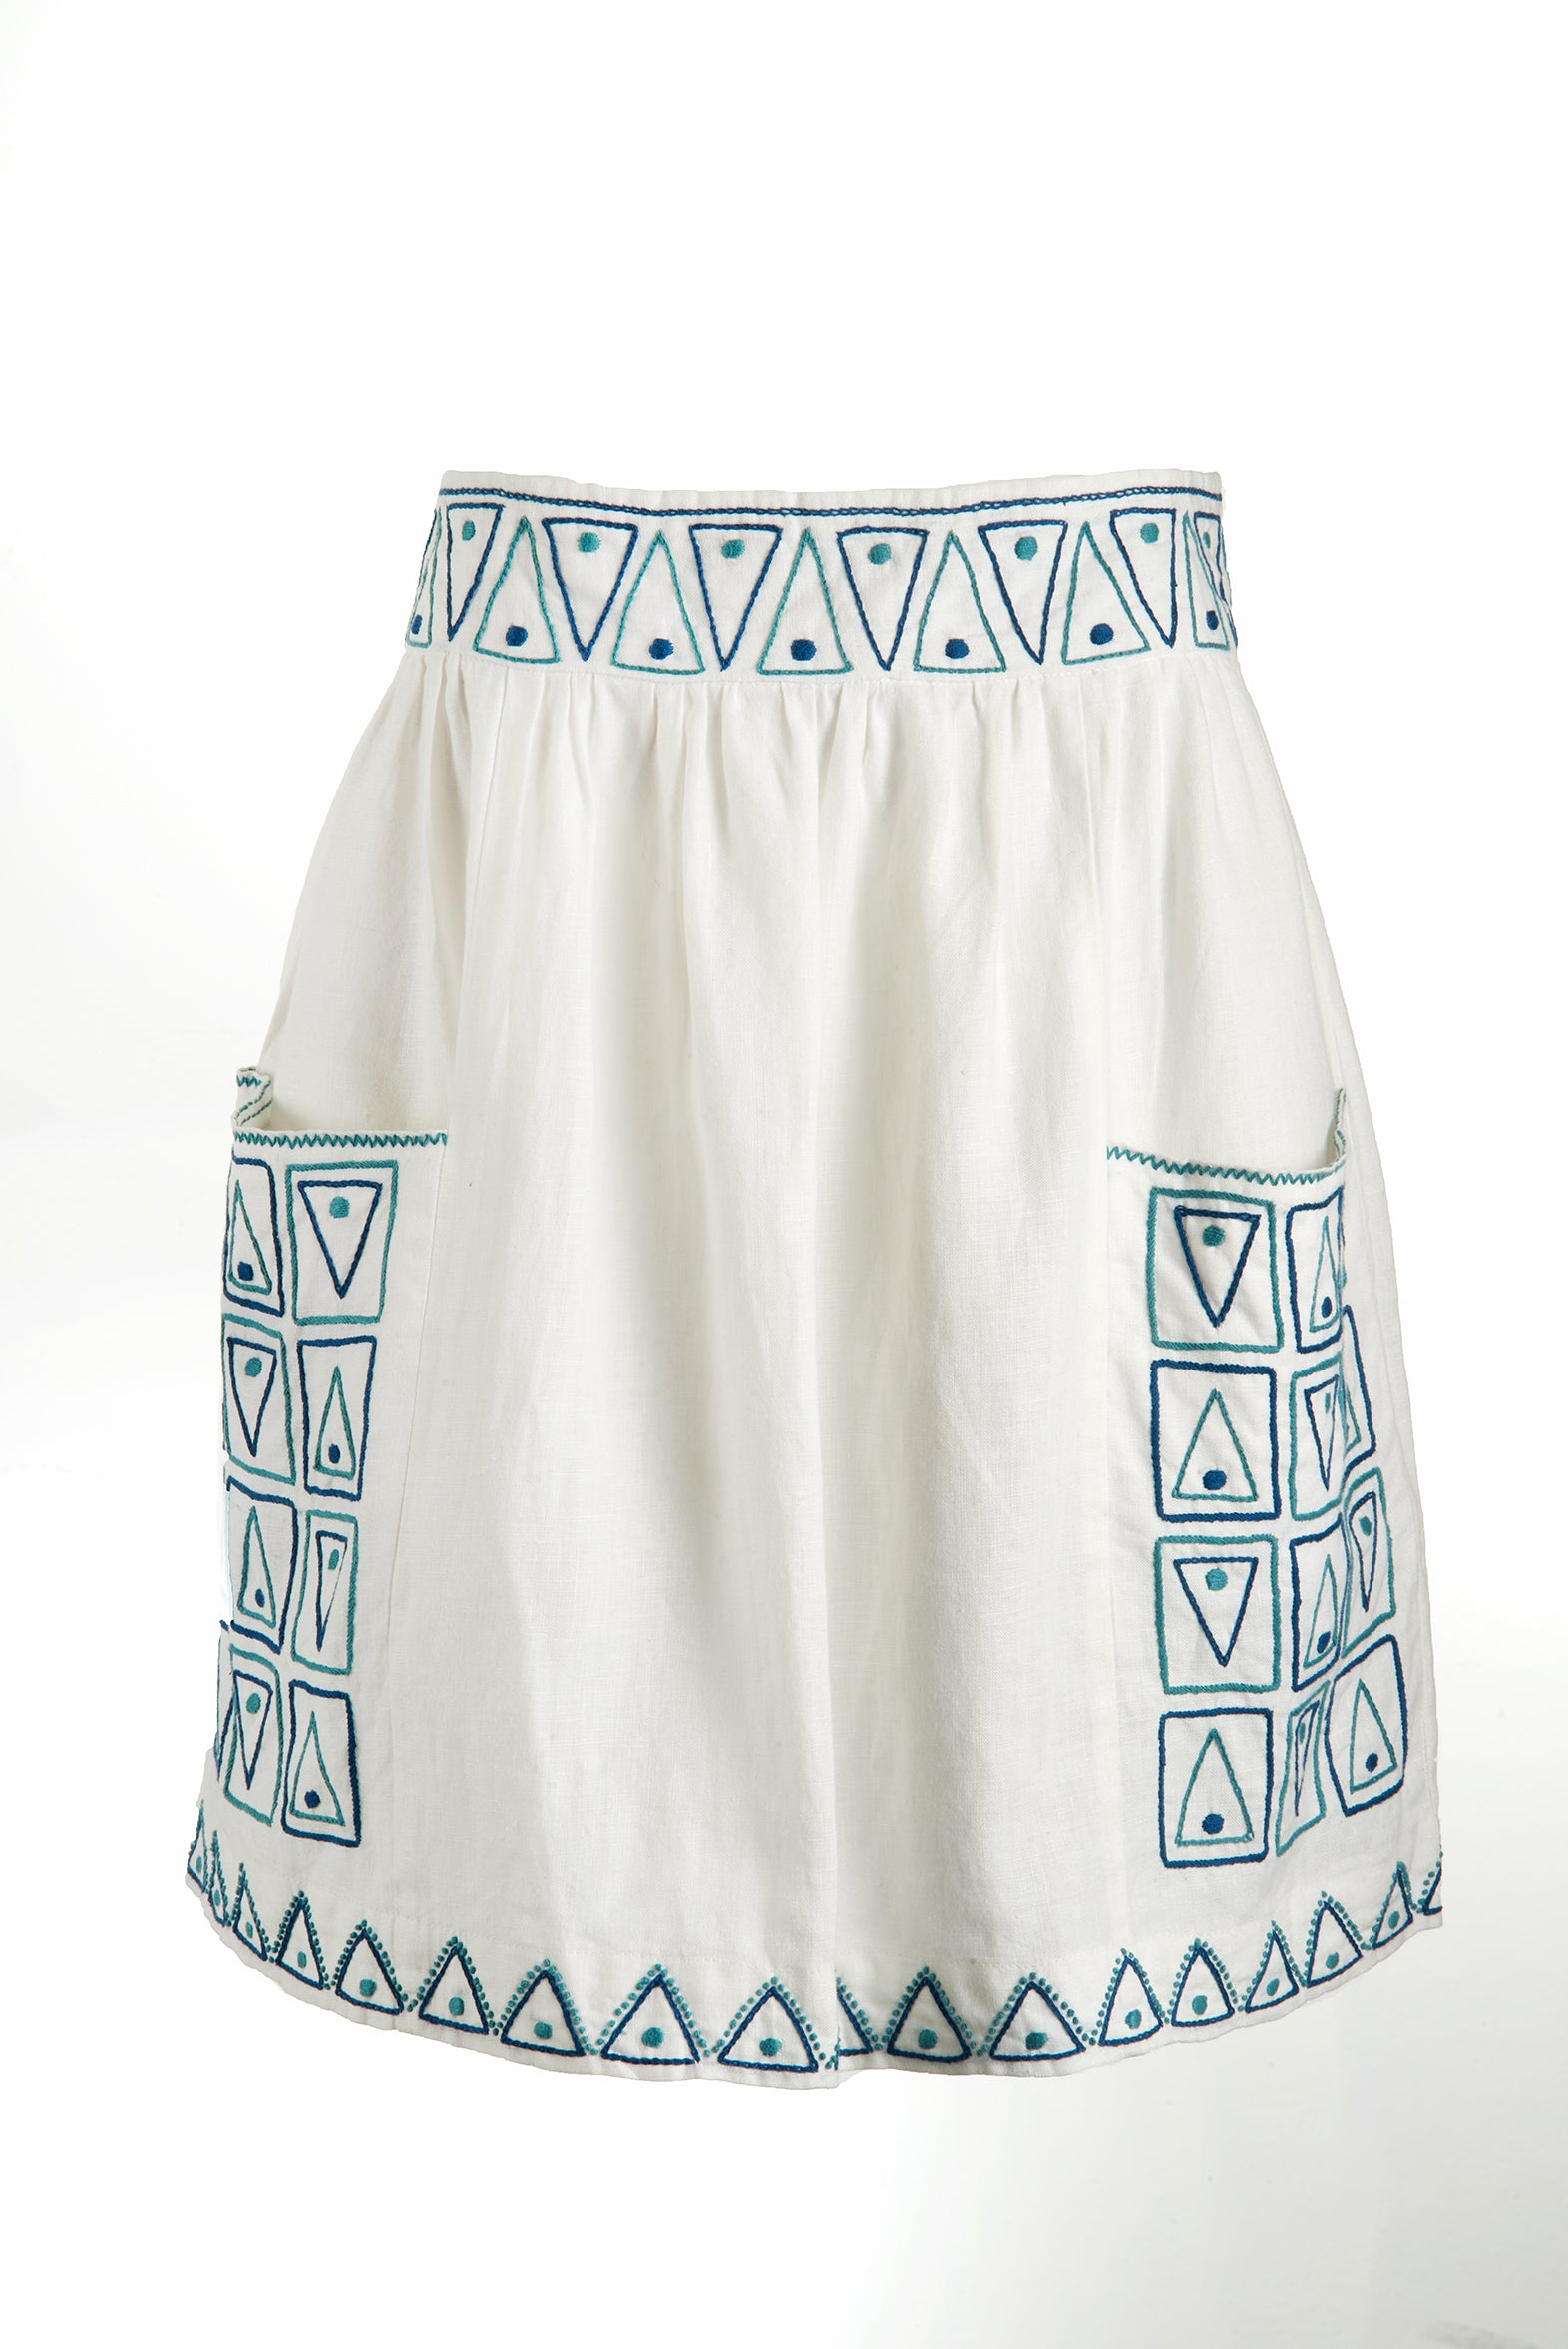 THE CAAN DAY SKIRT